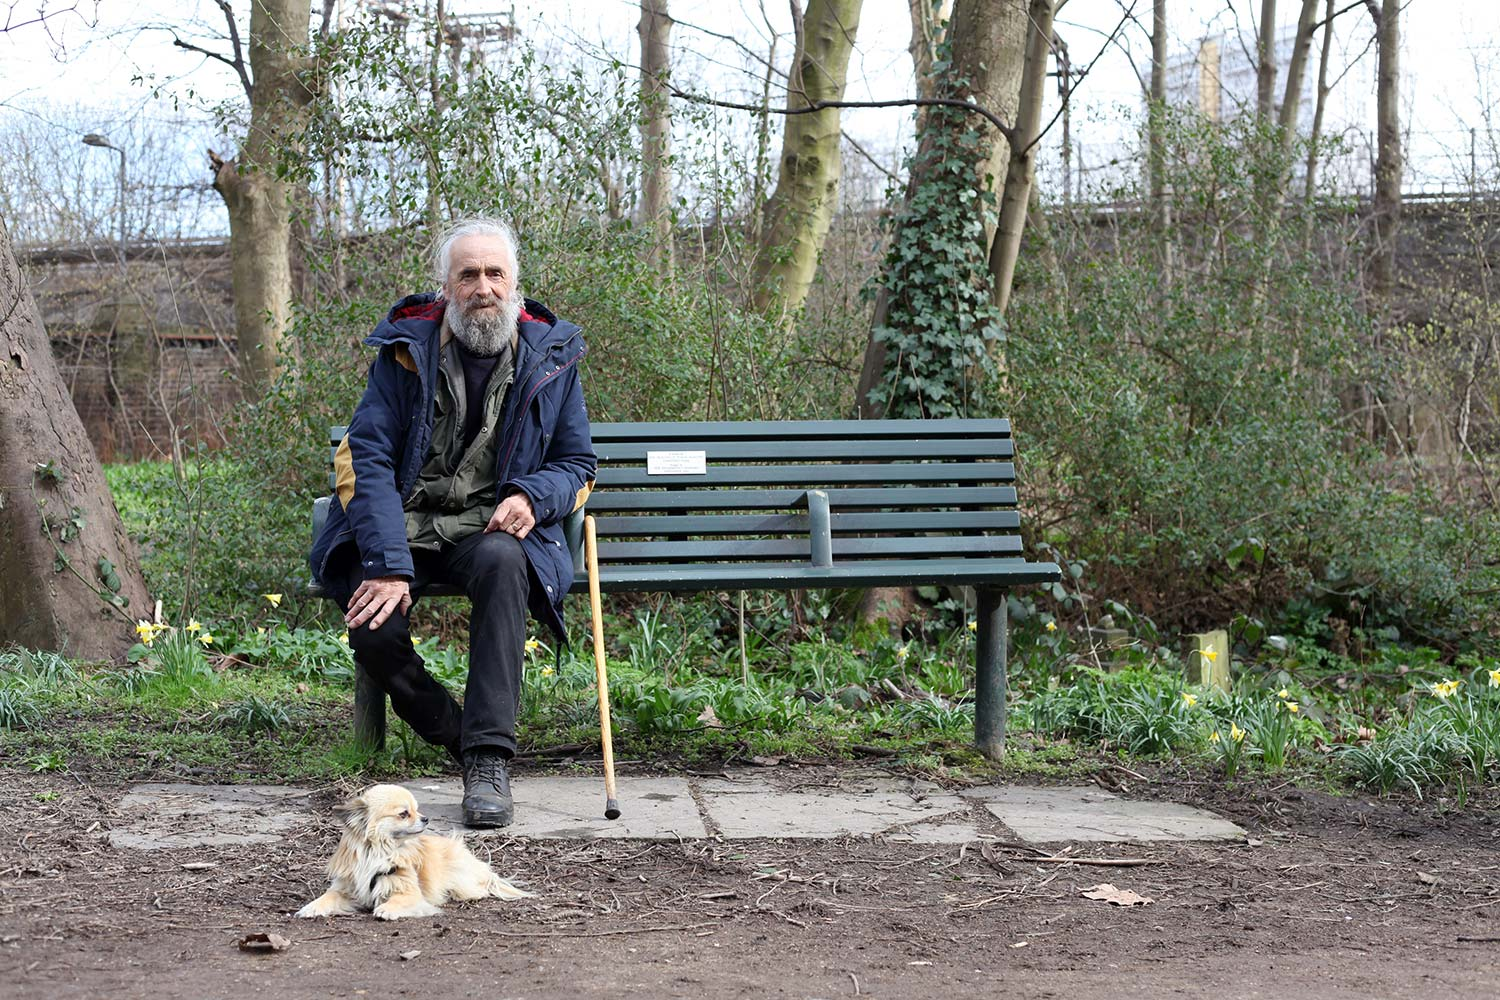 Keith and Hunter, his Chihuahua, on a bench in the Tower Hamlets Cemetery Park in East London